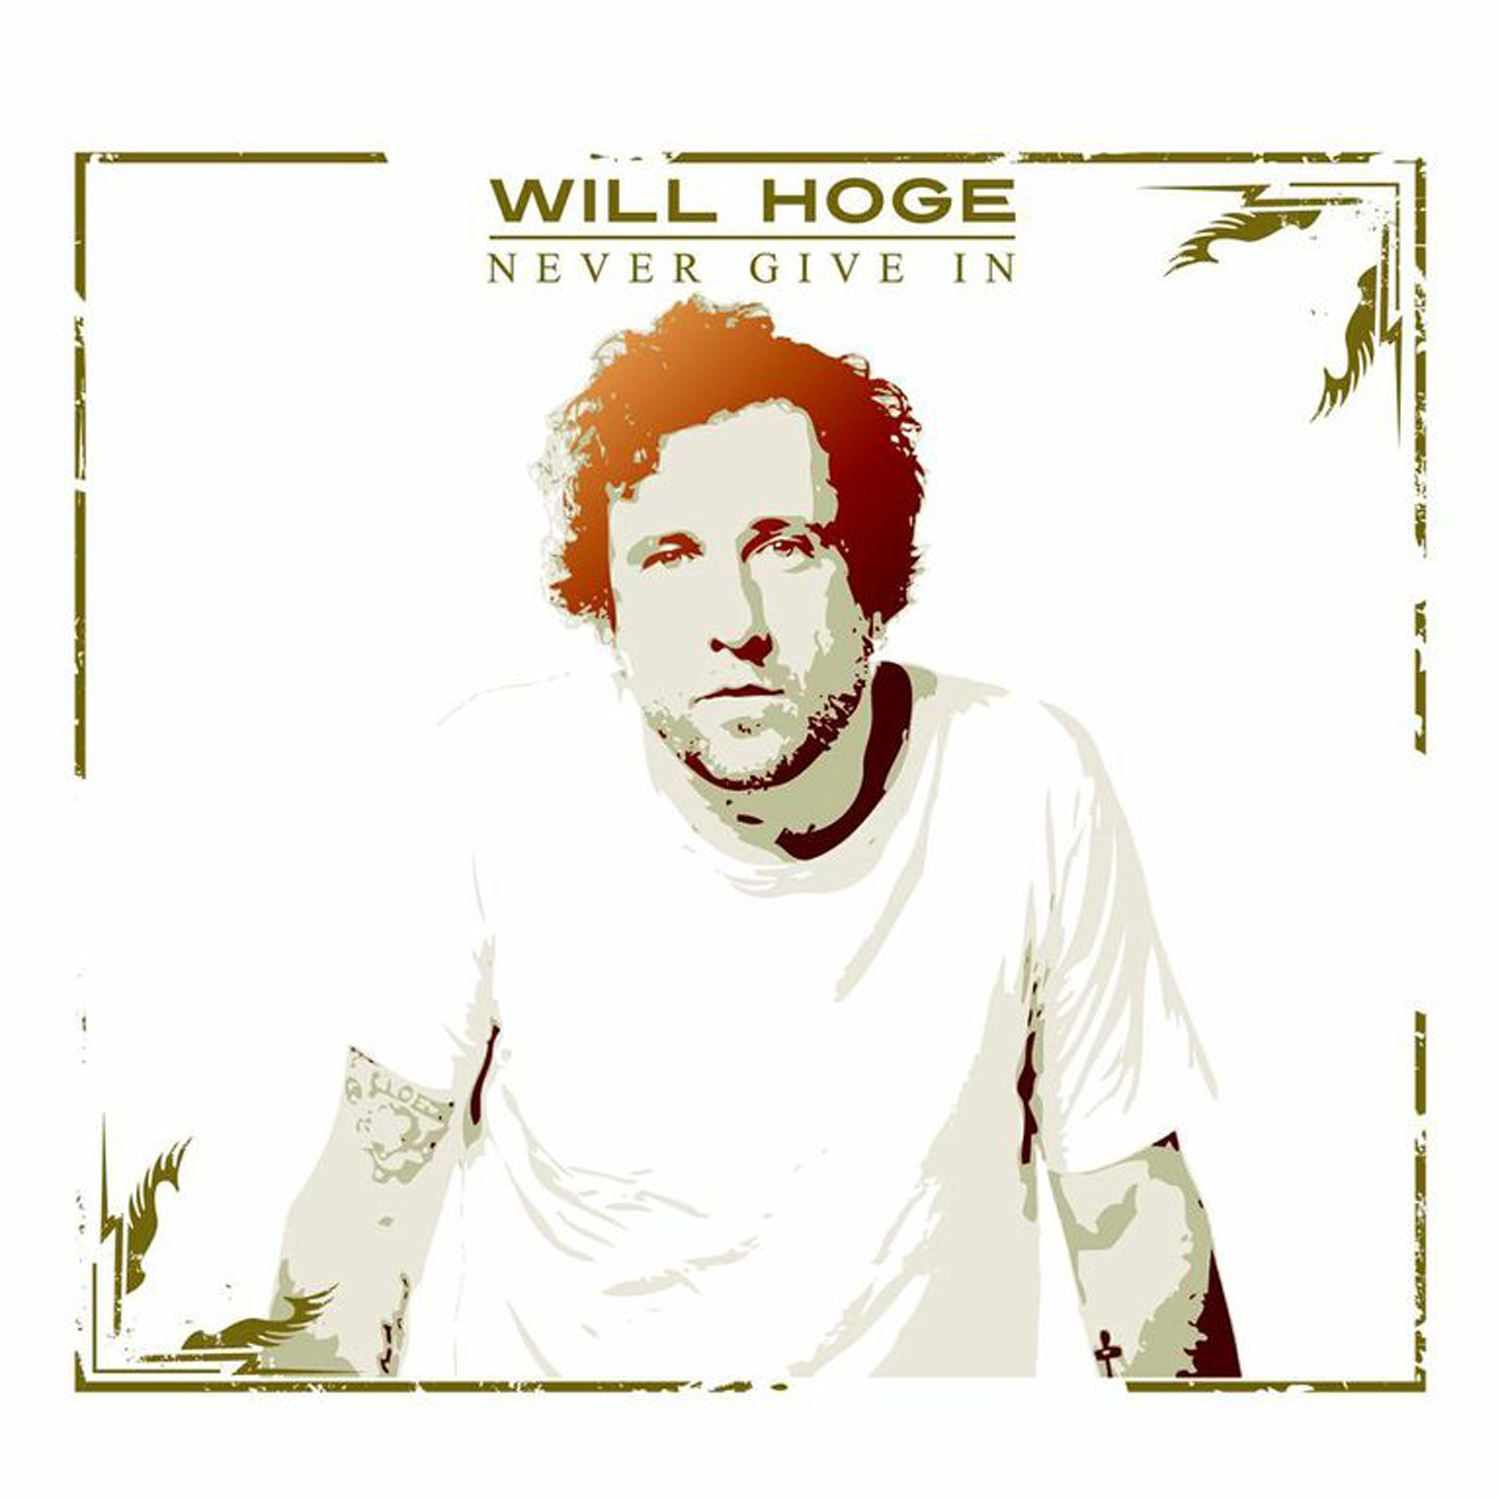 Shawn Brown's The Screaming Life: Will Hoge